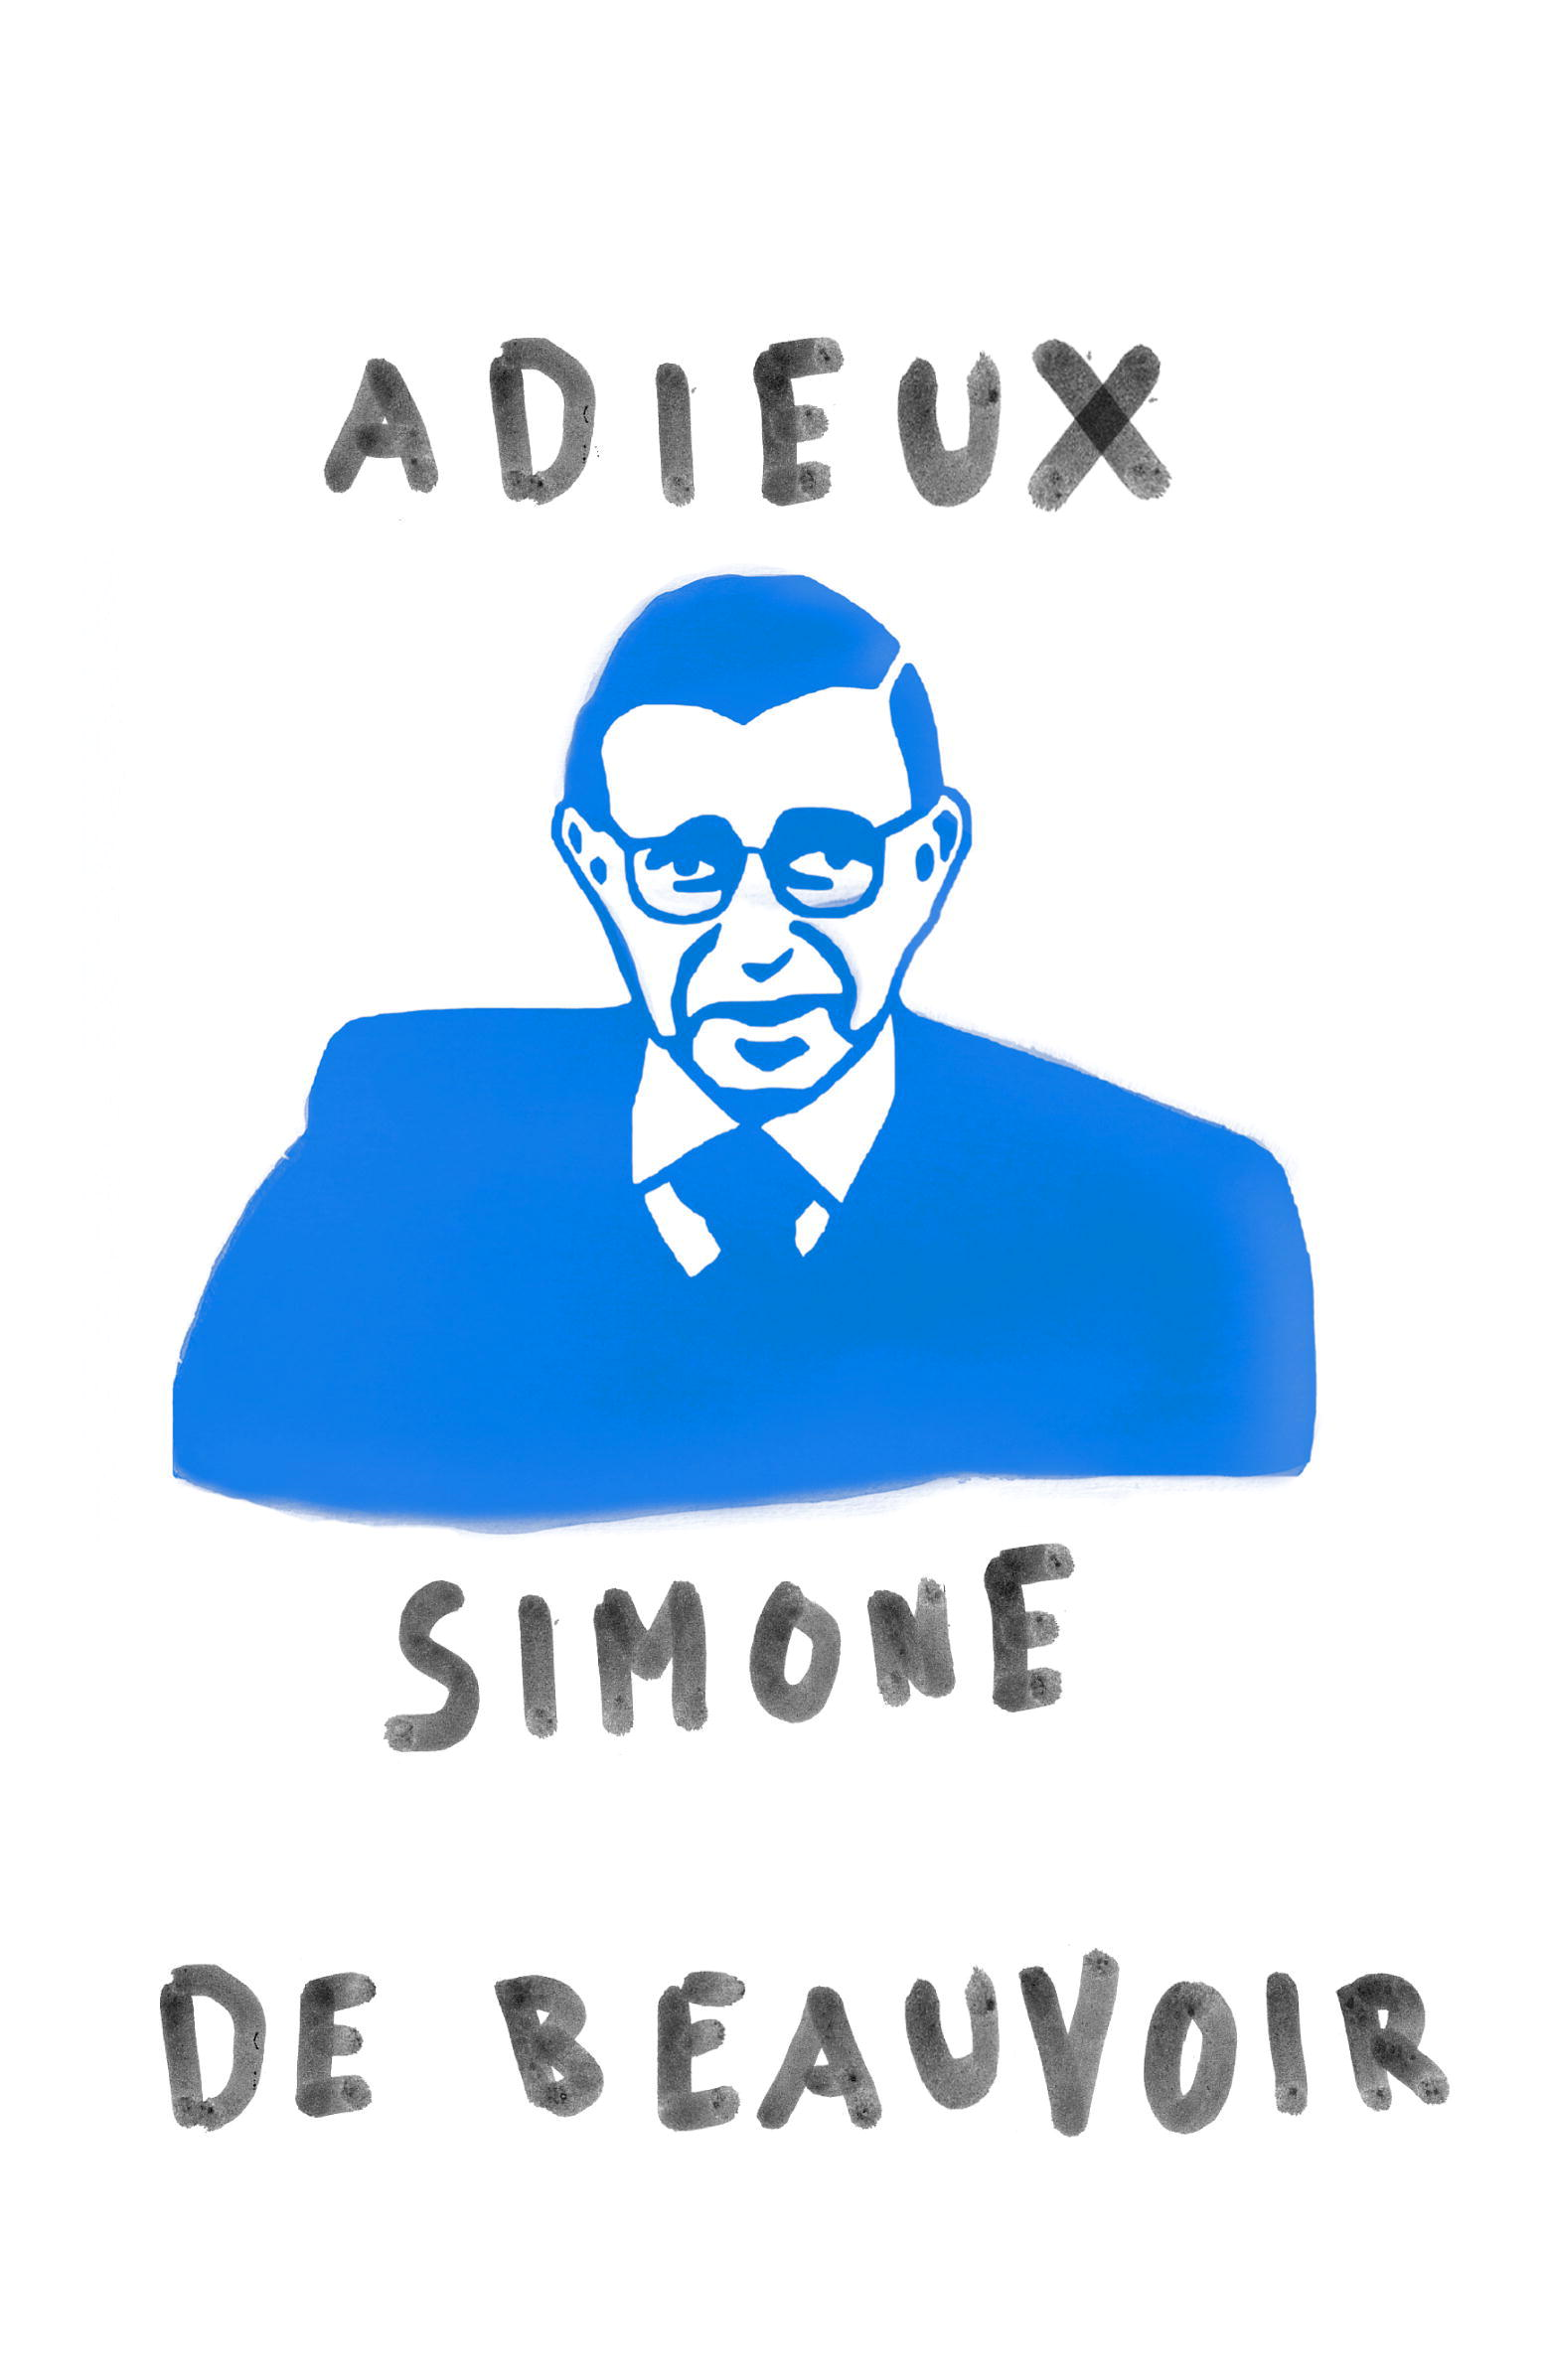 Adieux By: Simone De Beauvoir